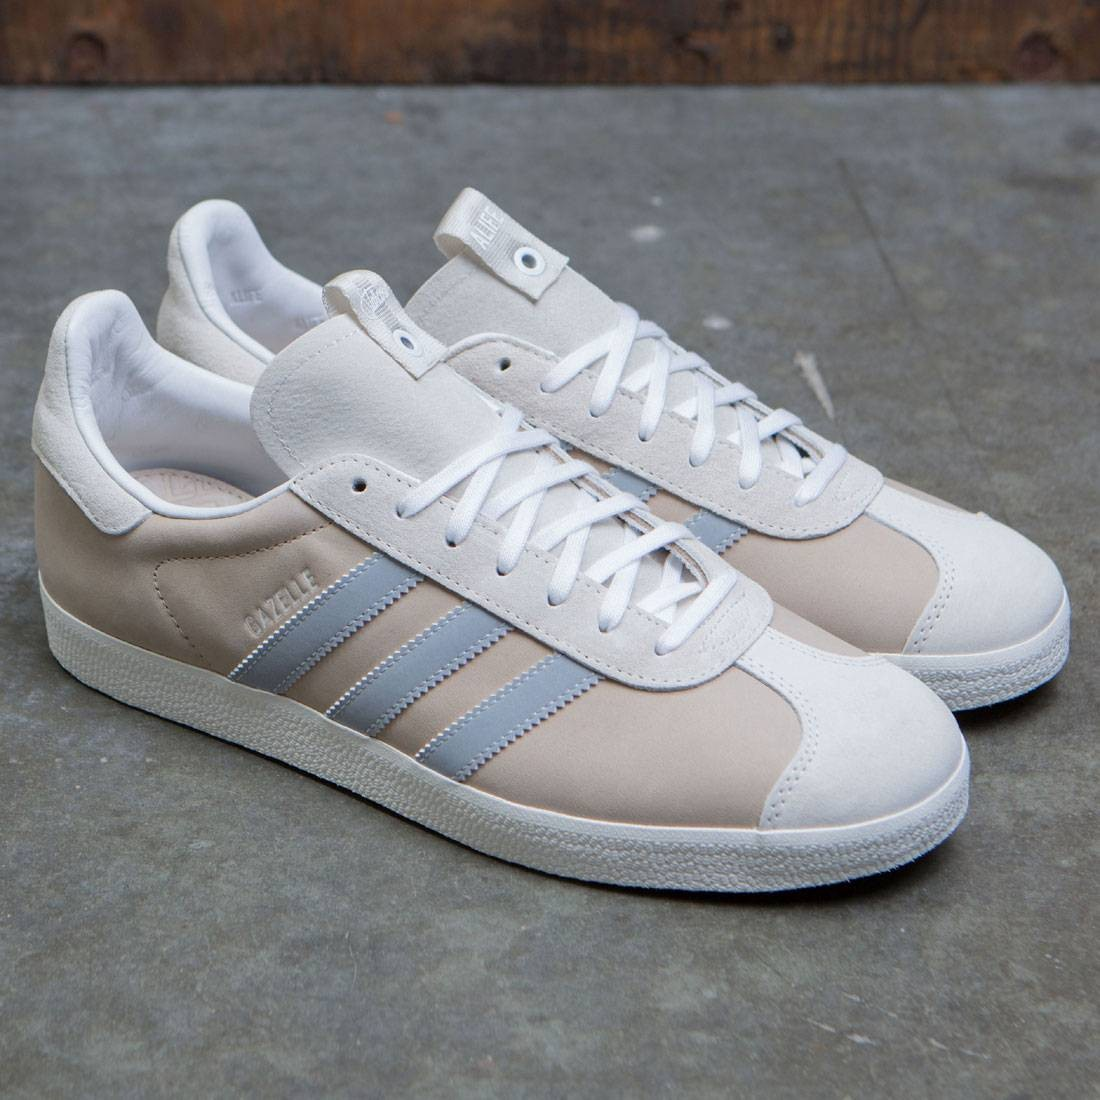 brand new 12285 8db54 Adidas Consortium x Alife x Starcow Men Gazelle Sneaker Exchange (white   chalk white)